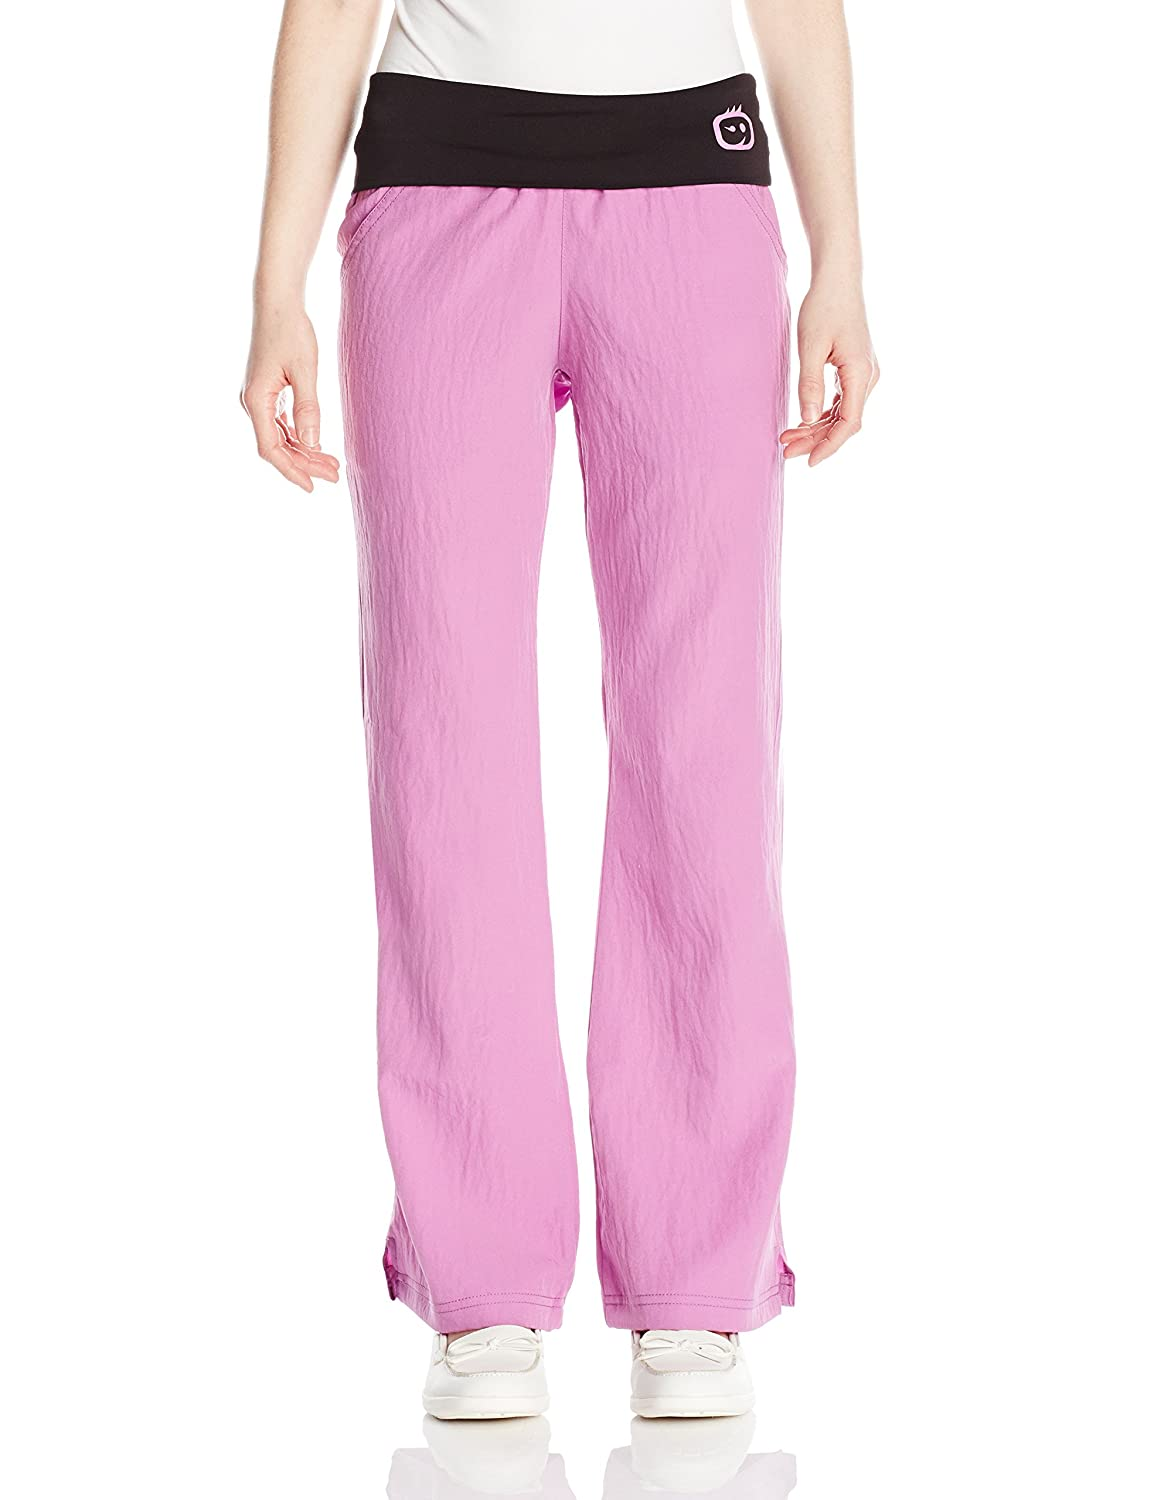 2a26893955a WONDERWINK Women's Four Stretch Fold Over Knit Waist Scrub Pant, Petite:  Amazon.ca: Clothing & Accessories